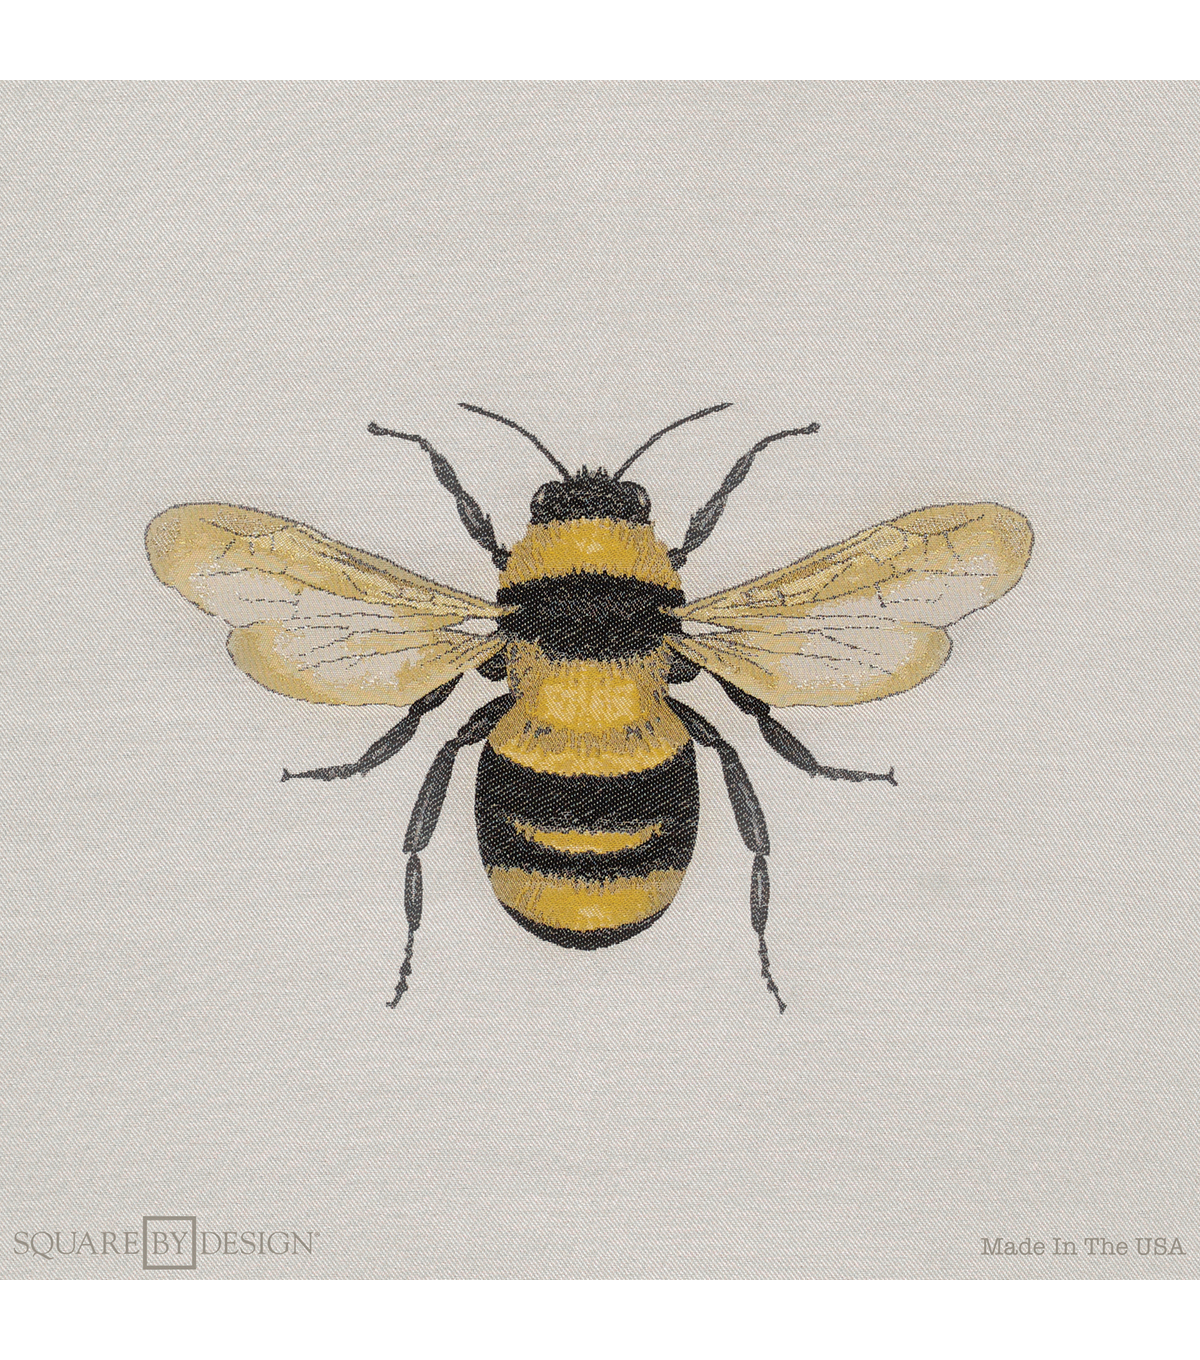 Square By Design Woven Fabric 25u0022 Bumble Bee